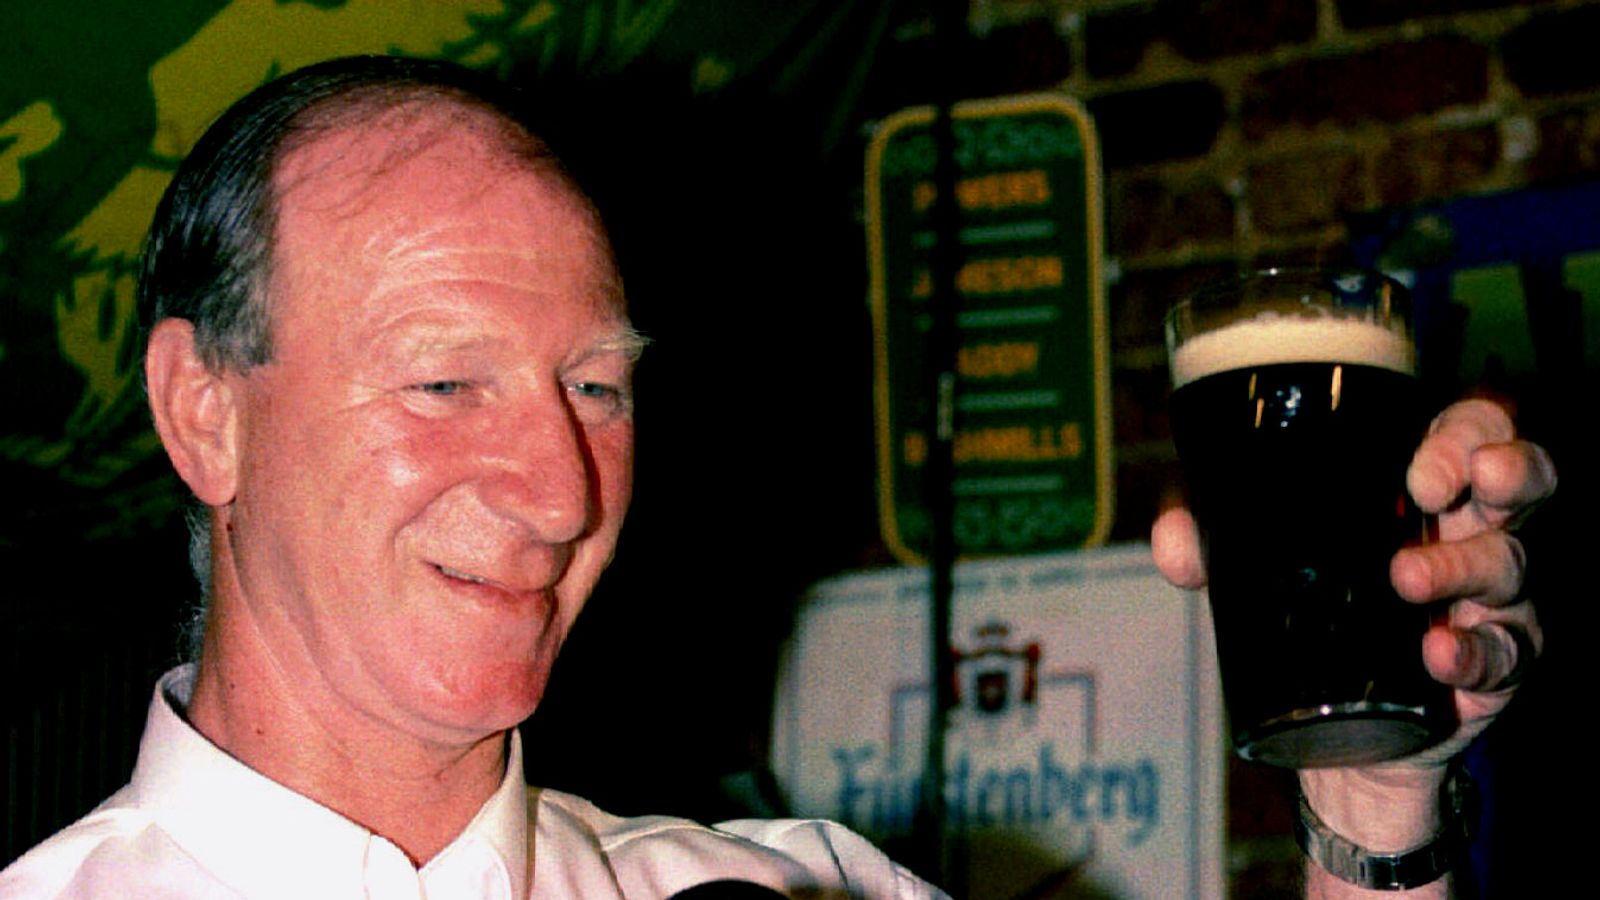 Jack Charlton: Tributes paid to former England footballer and Ireland manager - Sky News